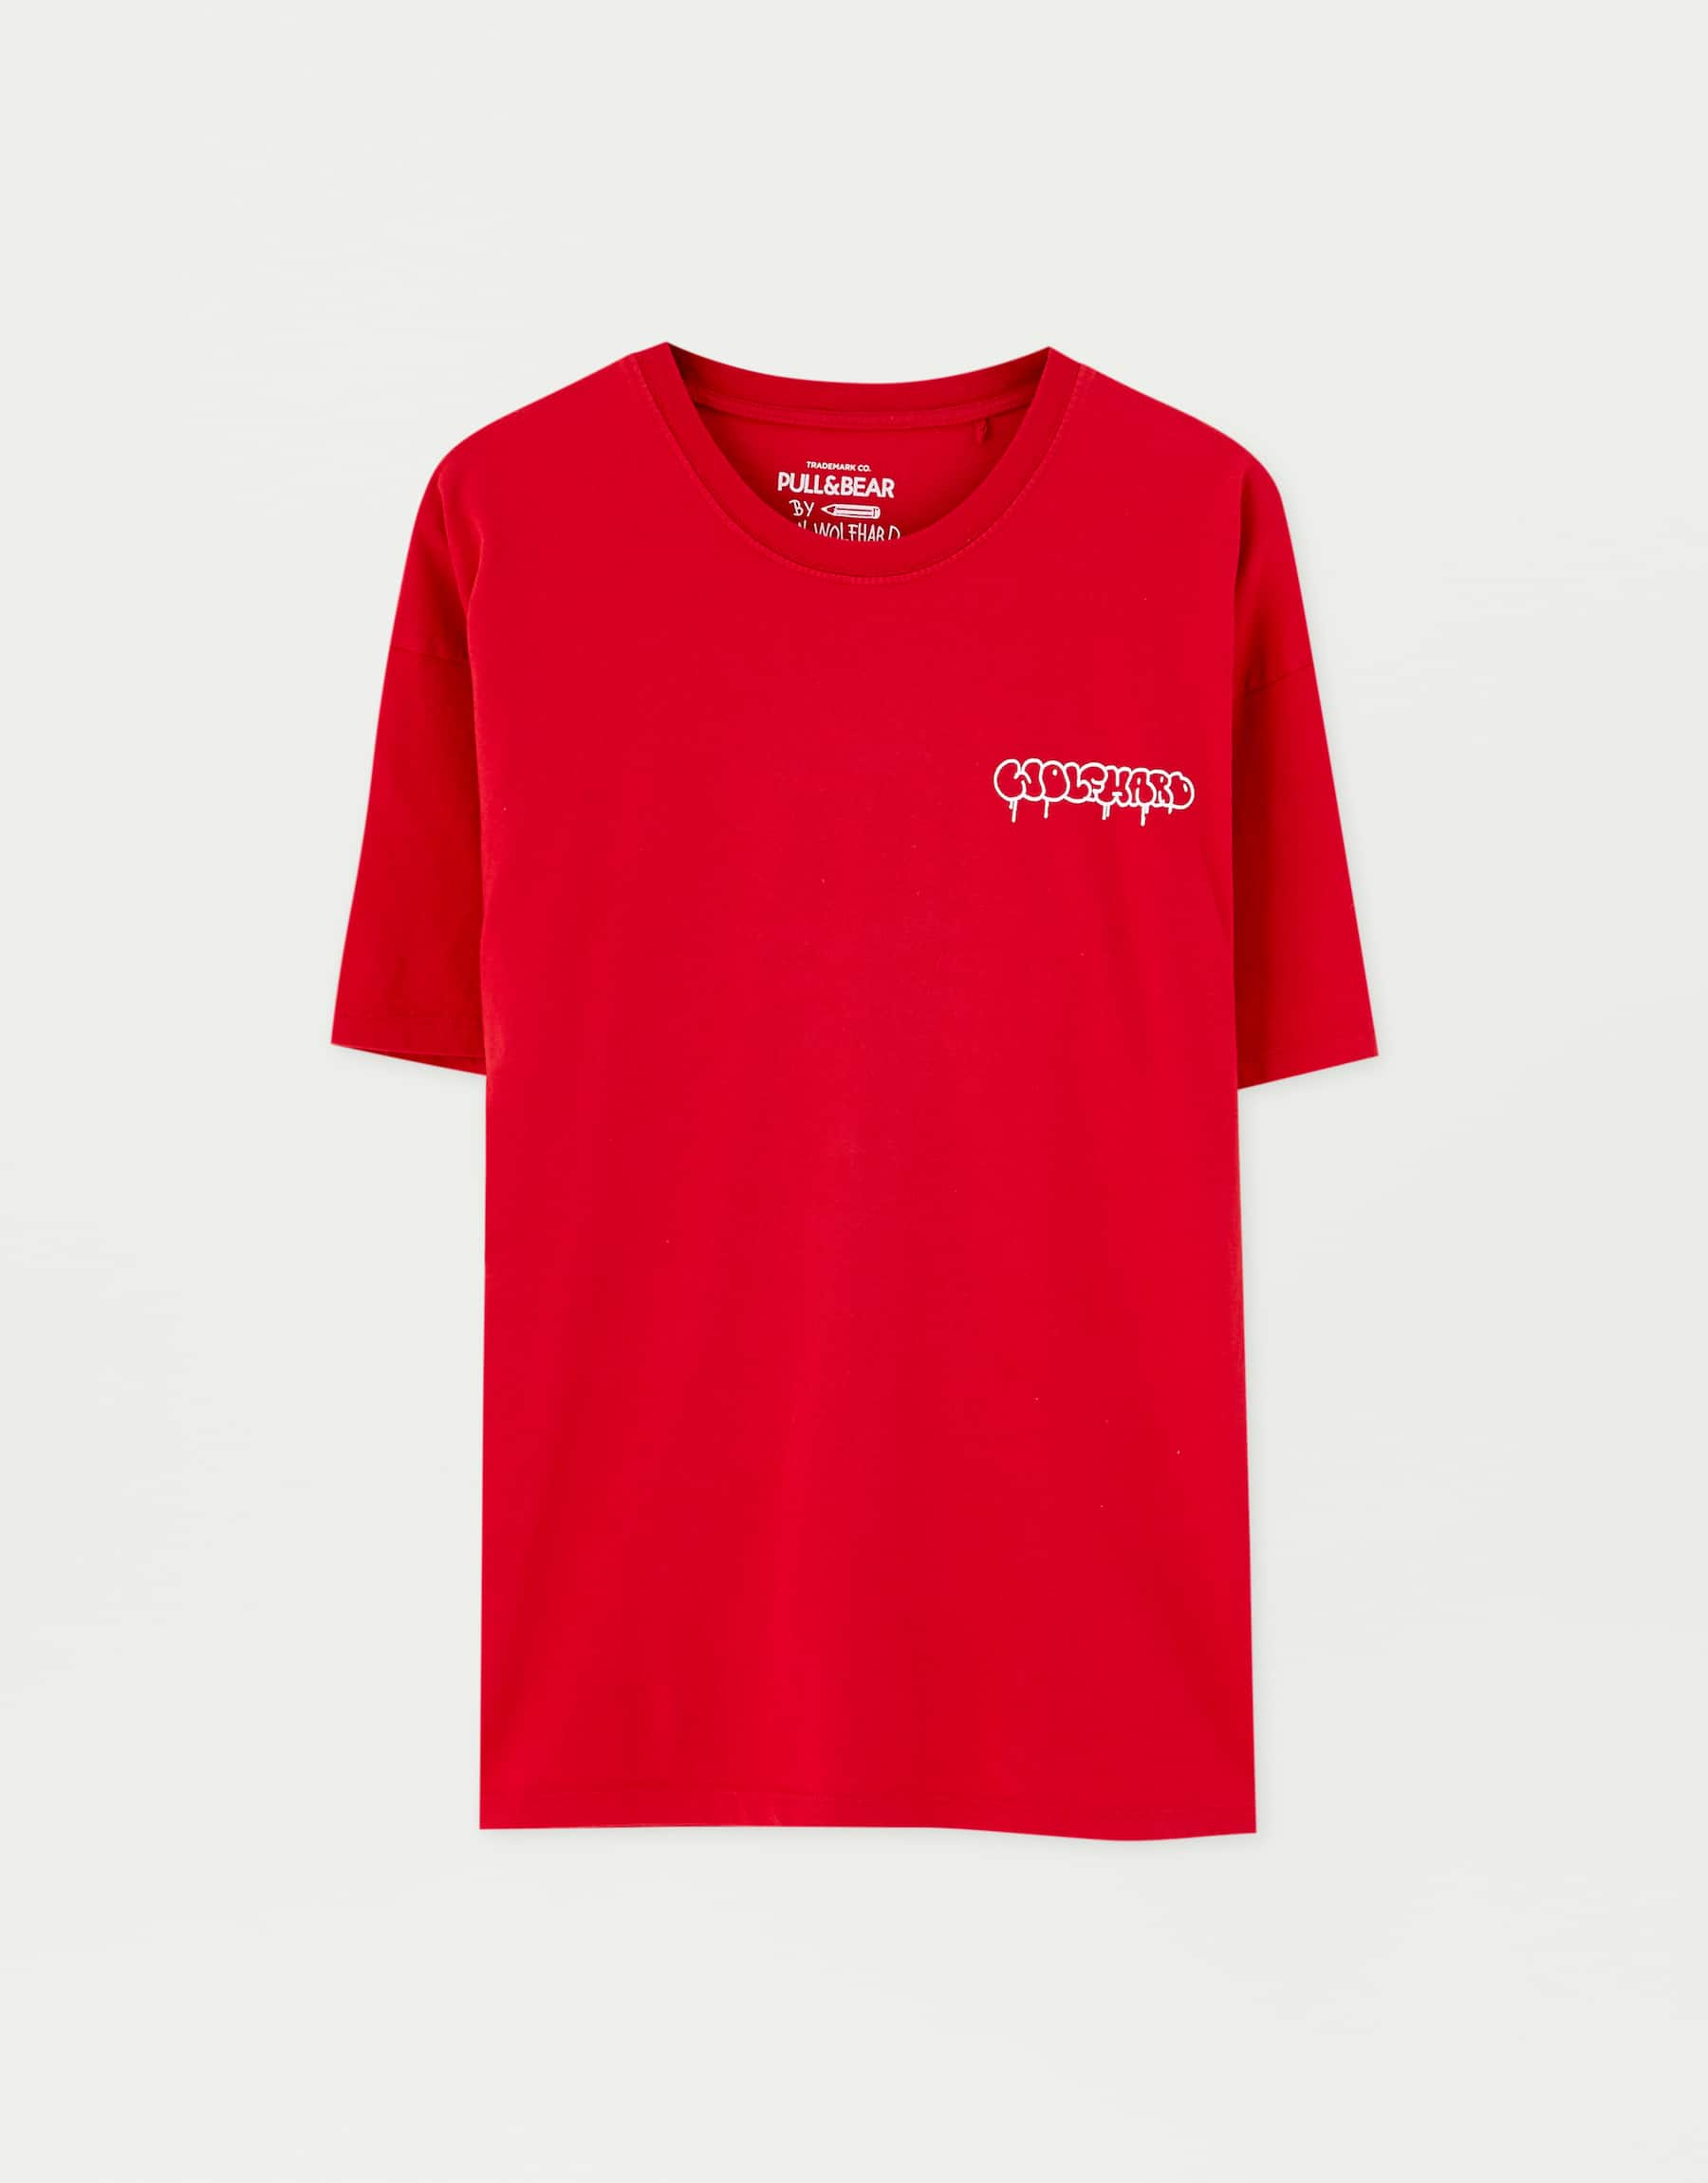 Finn Wolfhard Red T-Shirt, $29.90